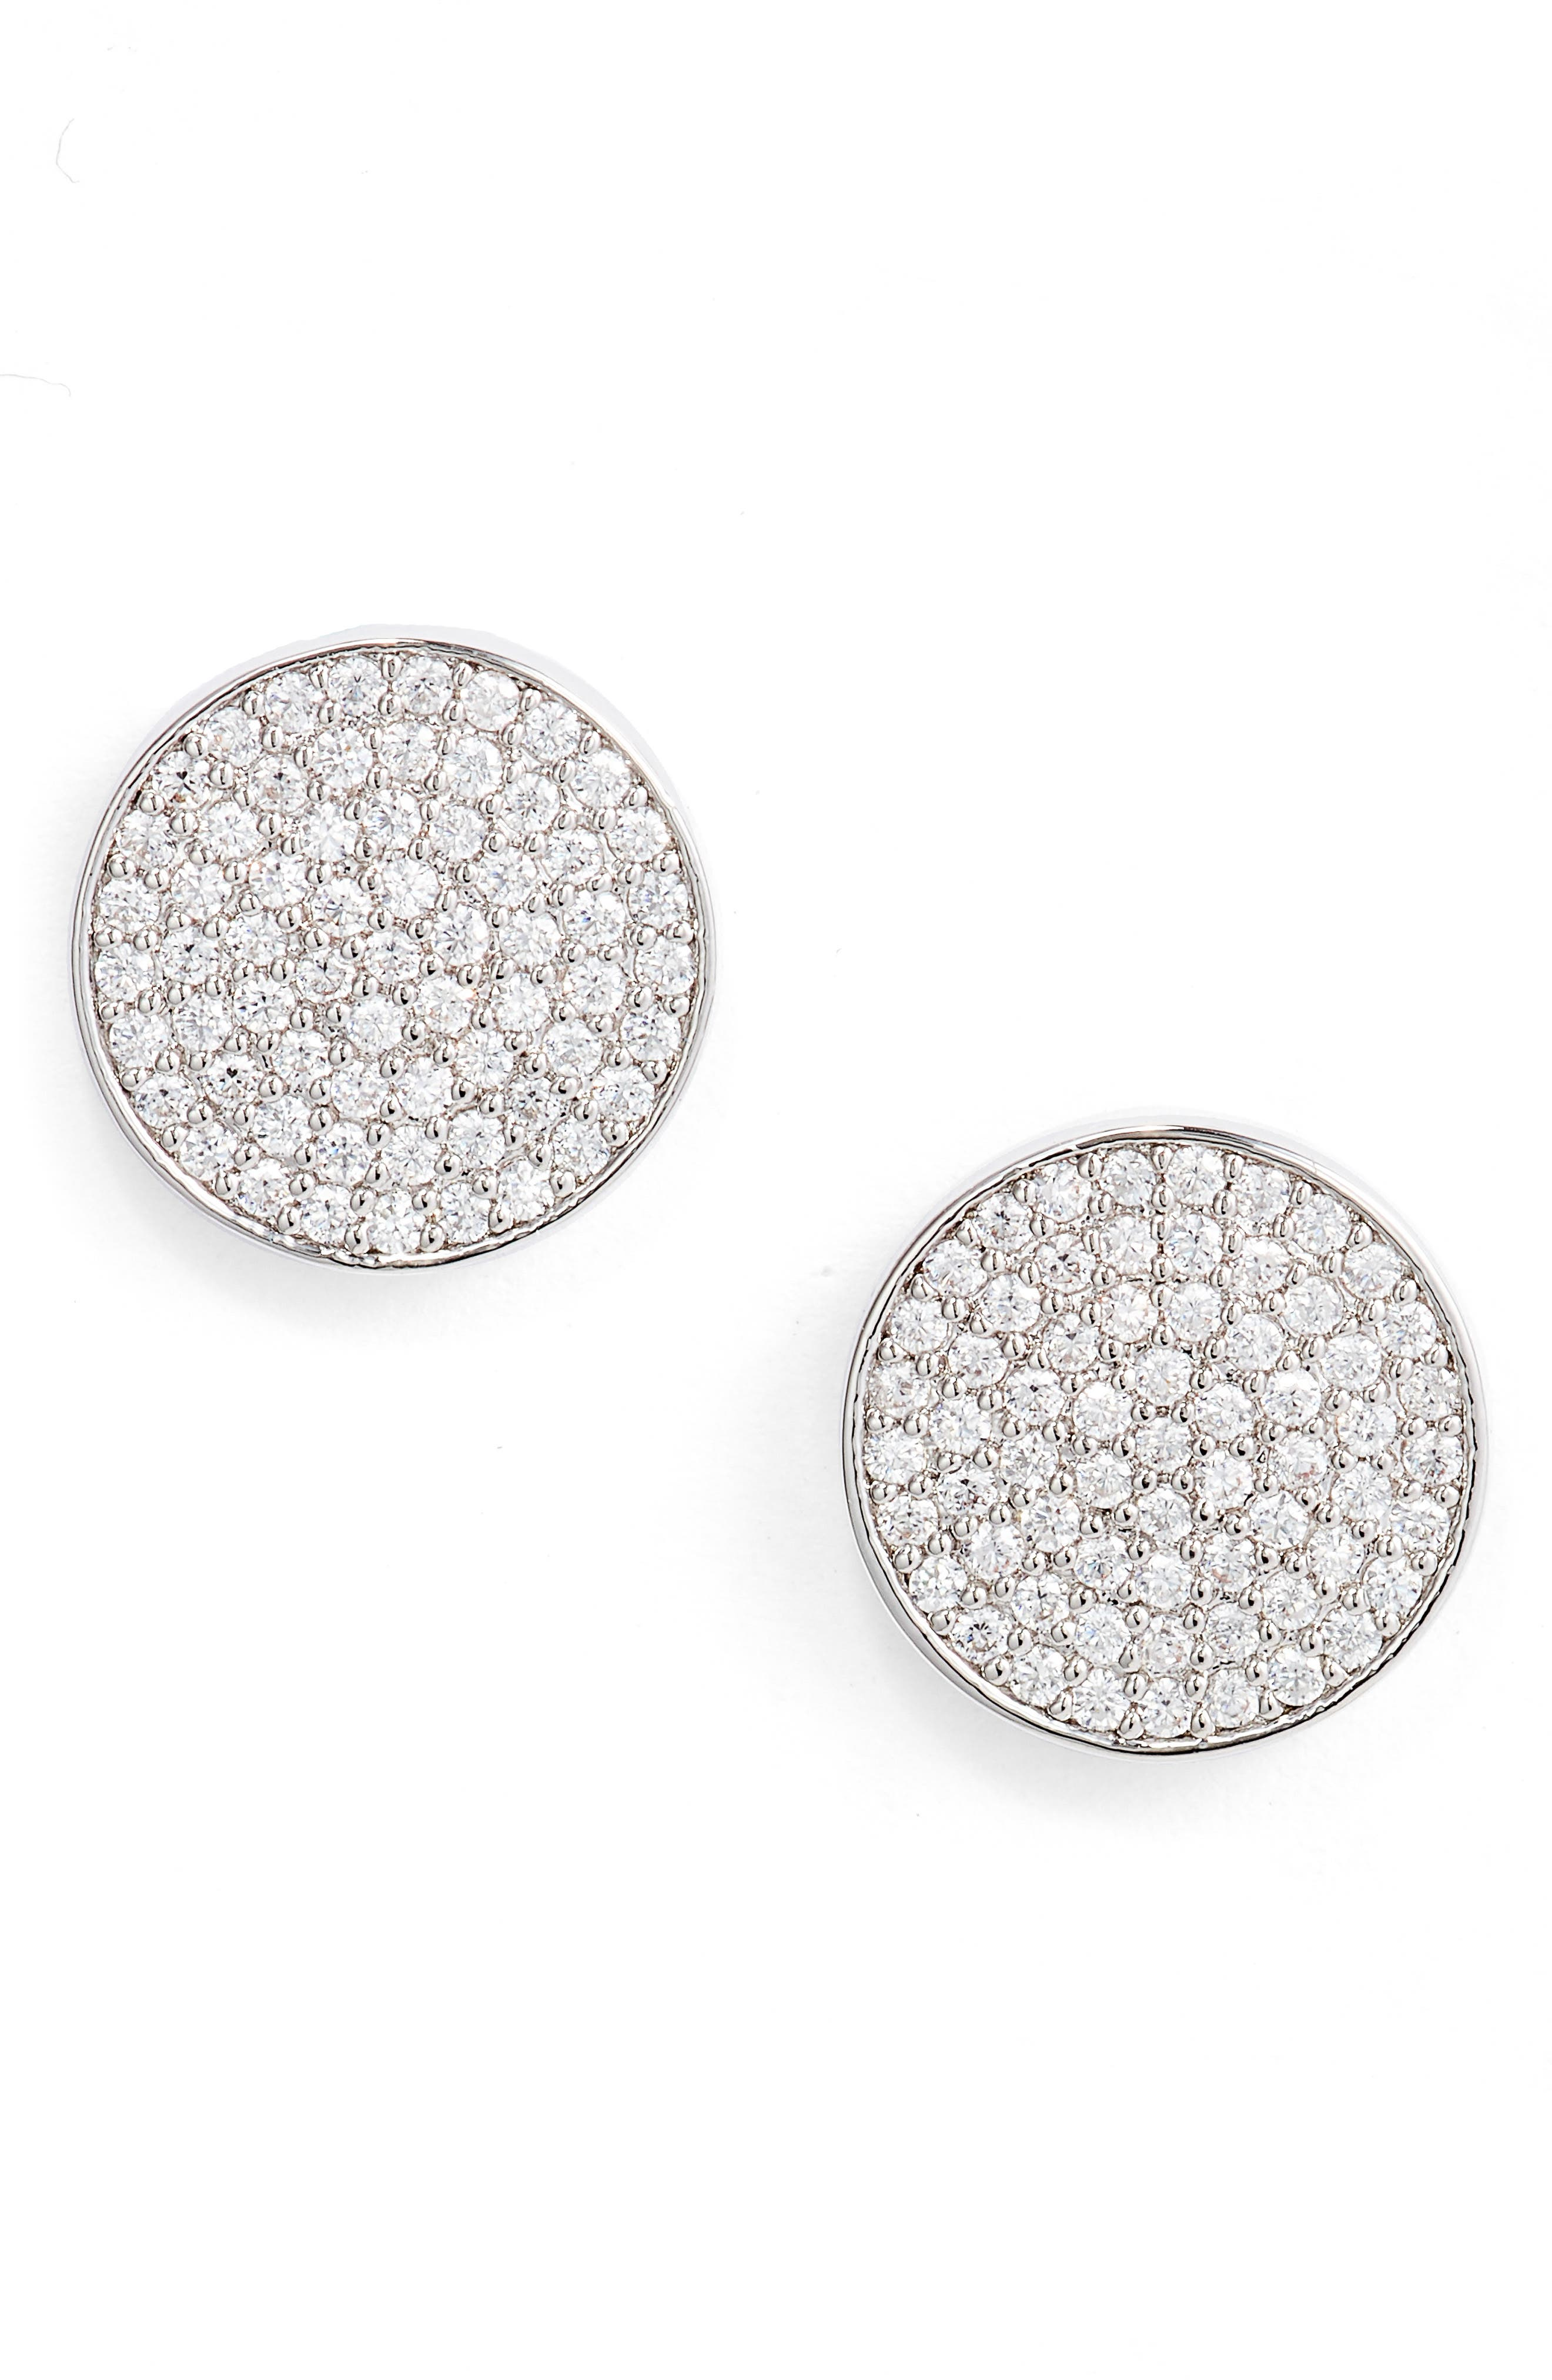 Sparkling cubic zirconia adds major sparkle and shine to these classic disc studs. Style Name: Nordstrom Pave Disc Stud Earrings. Style Number: 6016814. Available in stores.